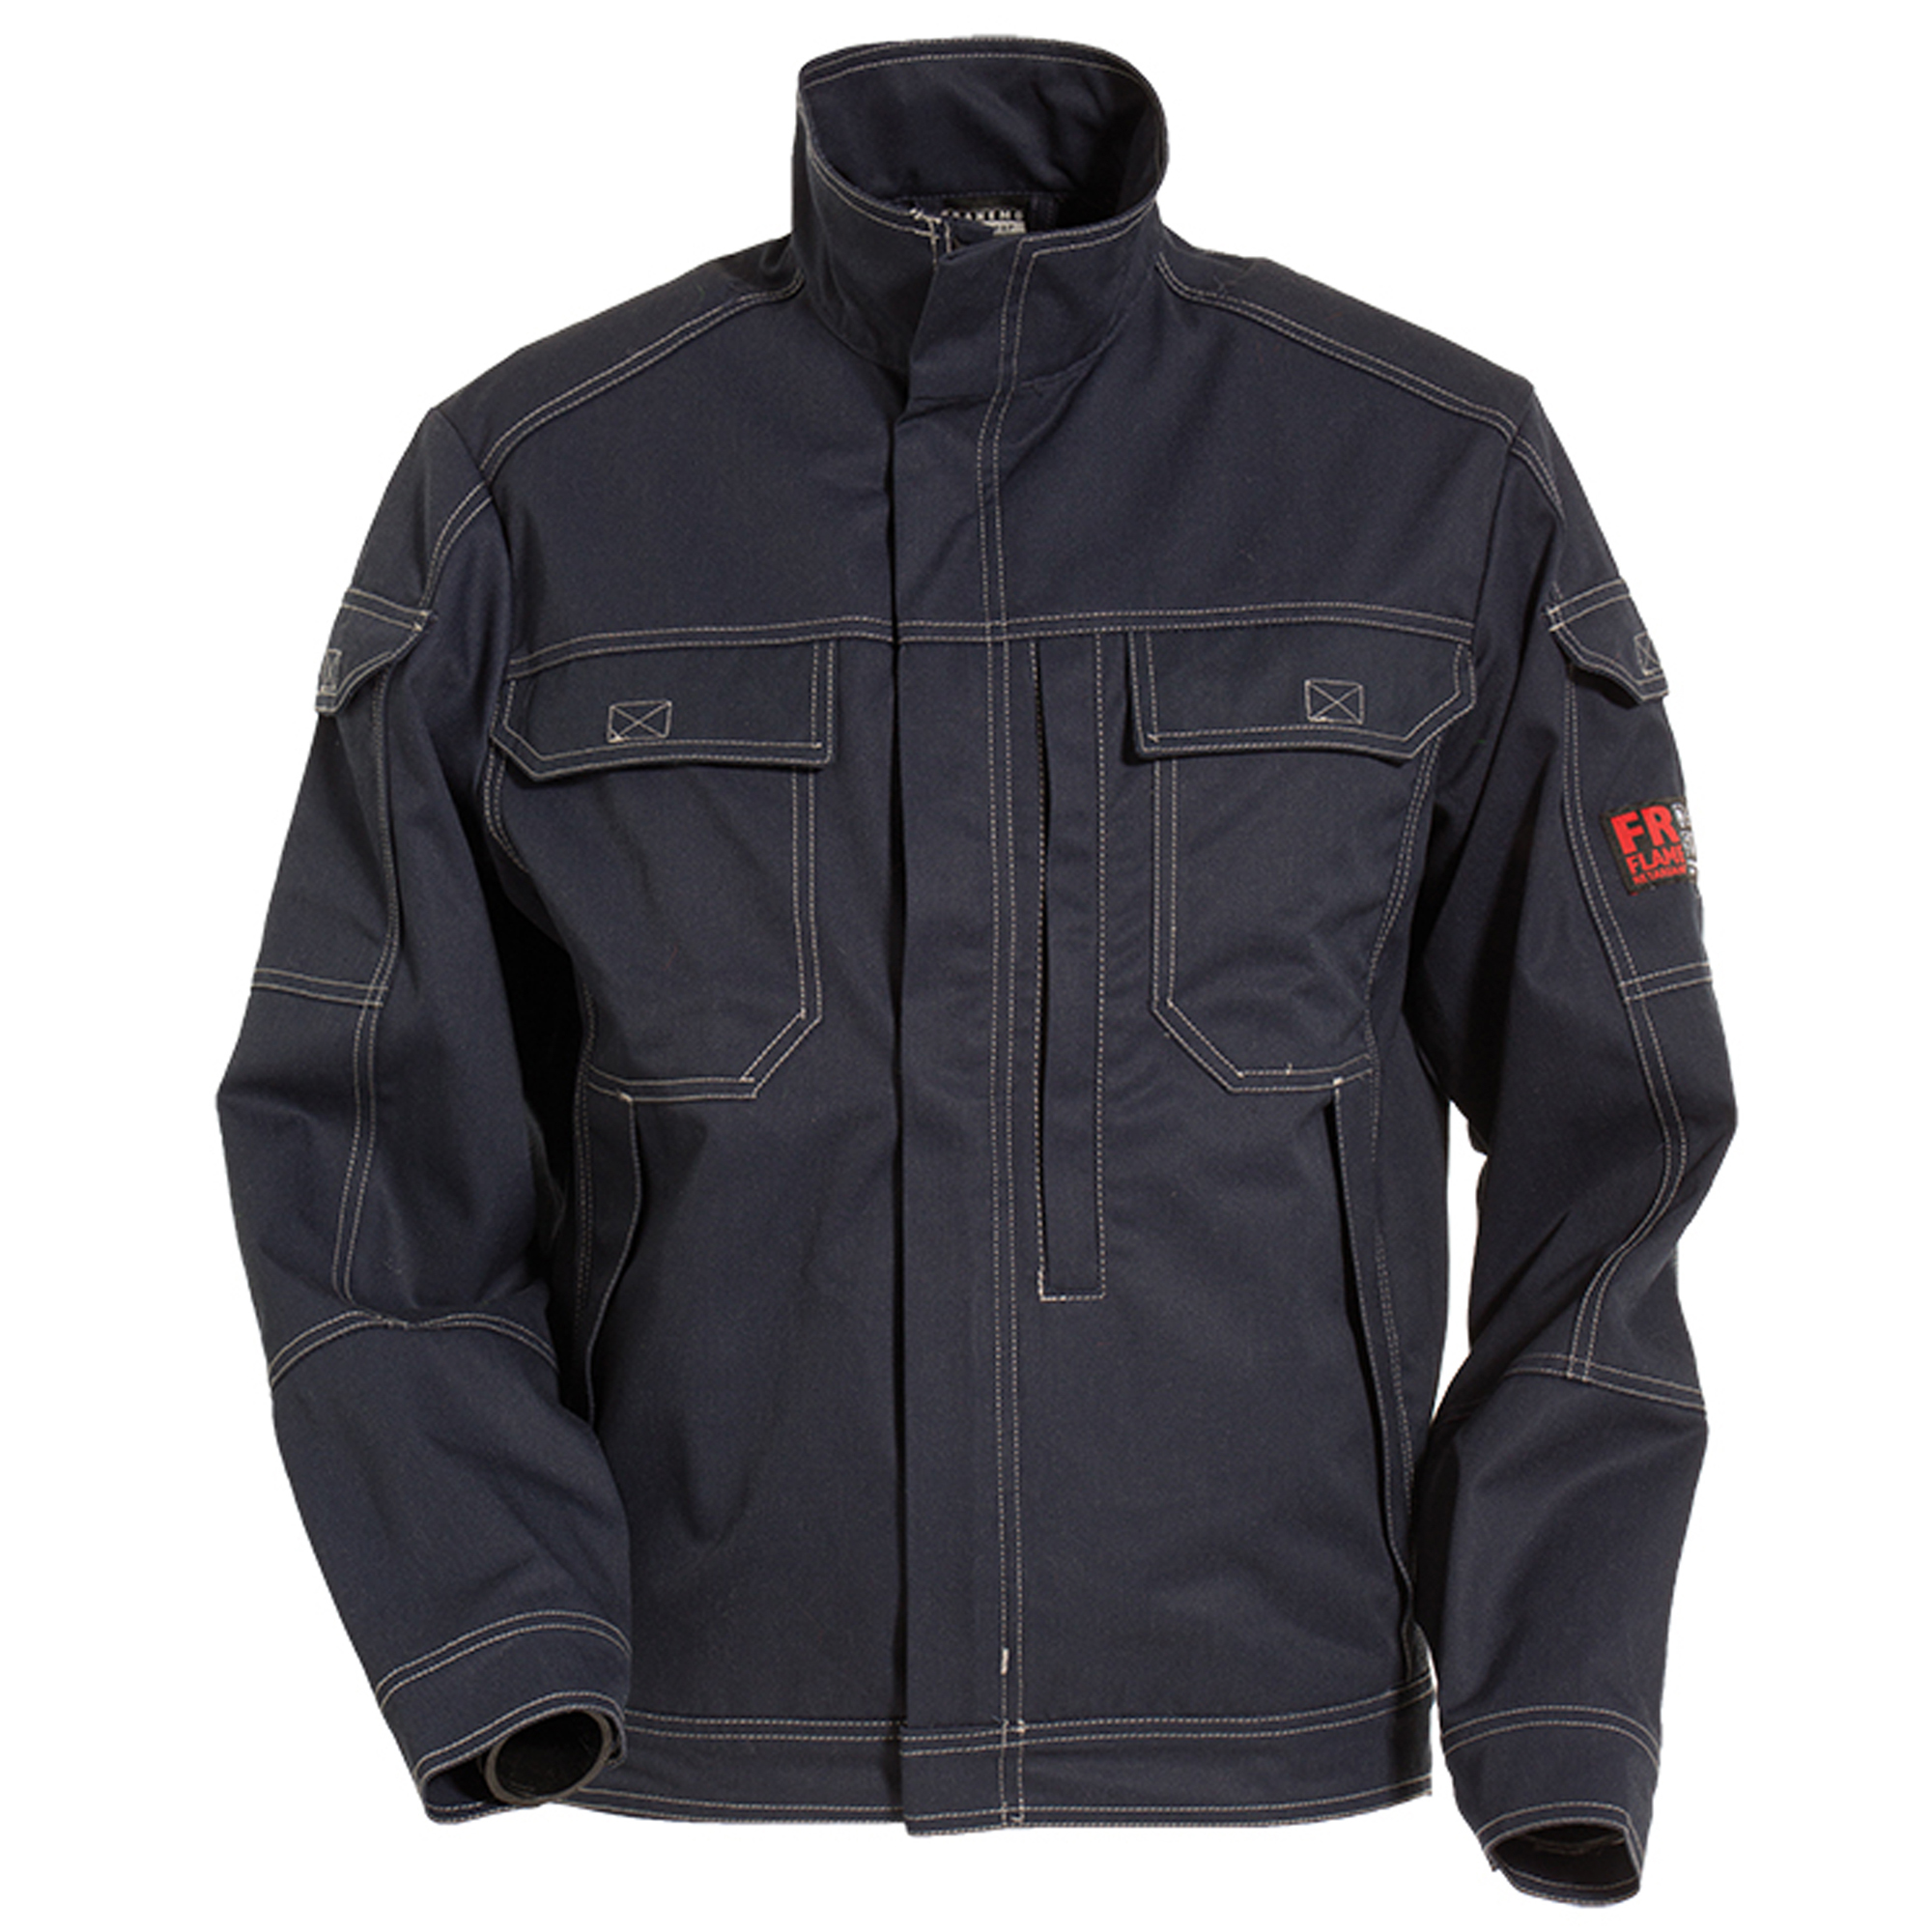 TRANEMO 5419 88 ARC FLASH JACKET - 11.9 CAL/CM2